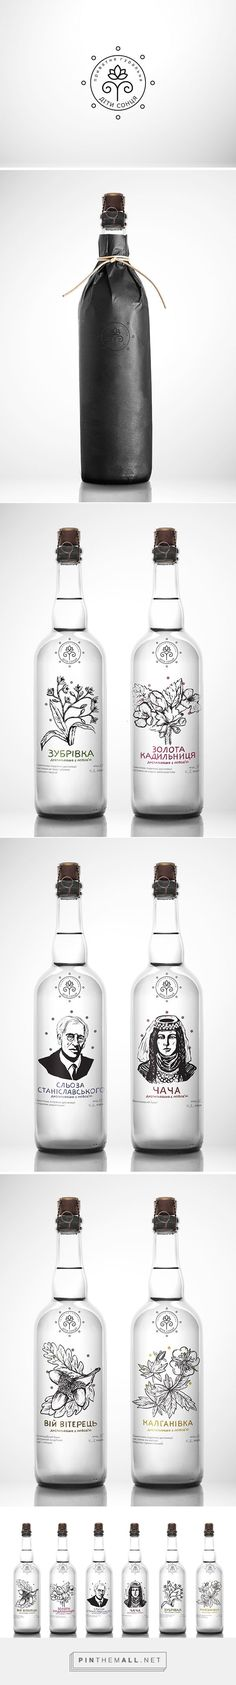 Moonshine packaging branding on Behance by Andreana Chunis curated by Packaging Diva PD. Love this illustrated bottle design for Moonshine : ):